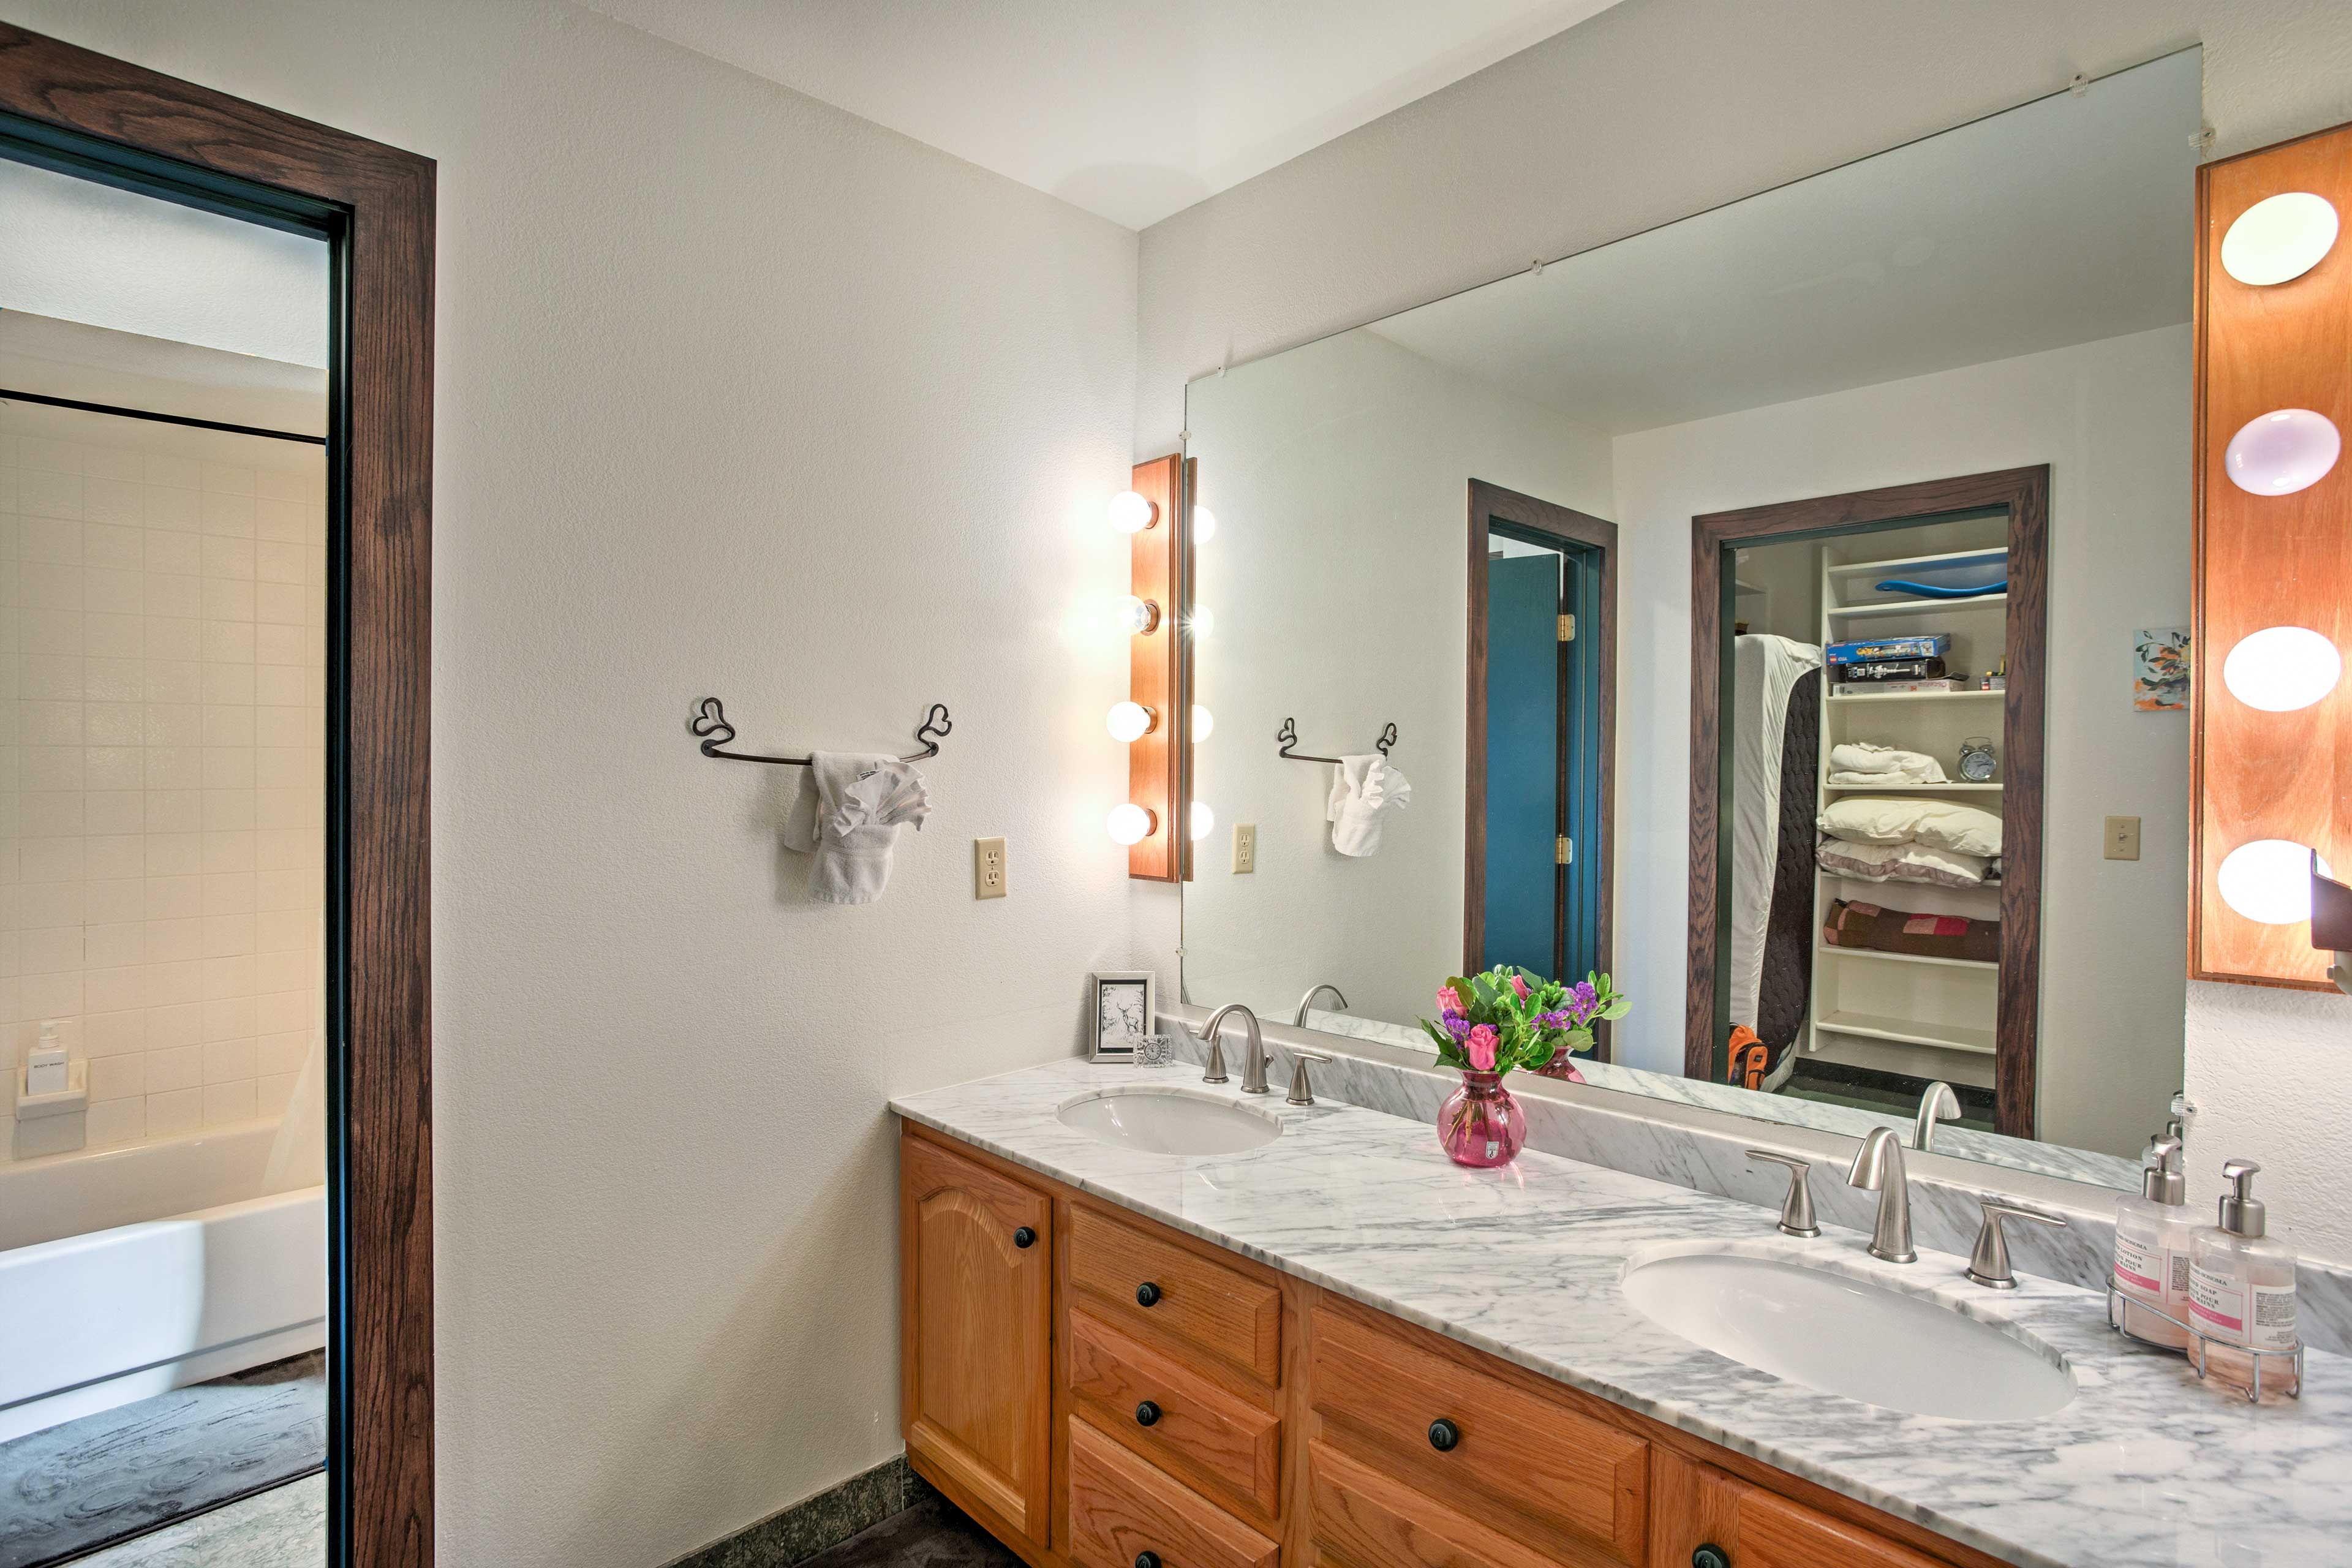 Freshen up in the master bathroom with double-sink vanity and walk-in shower.